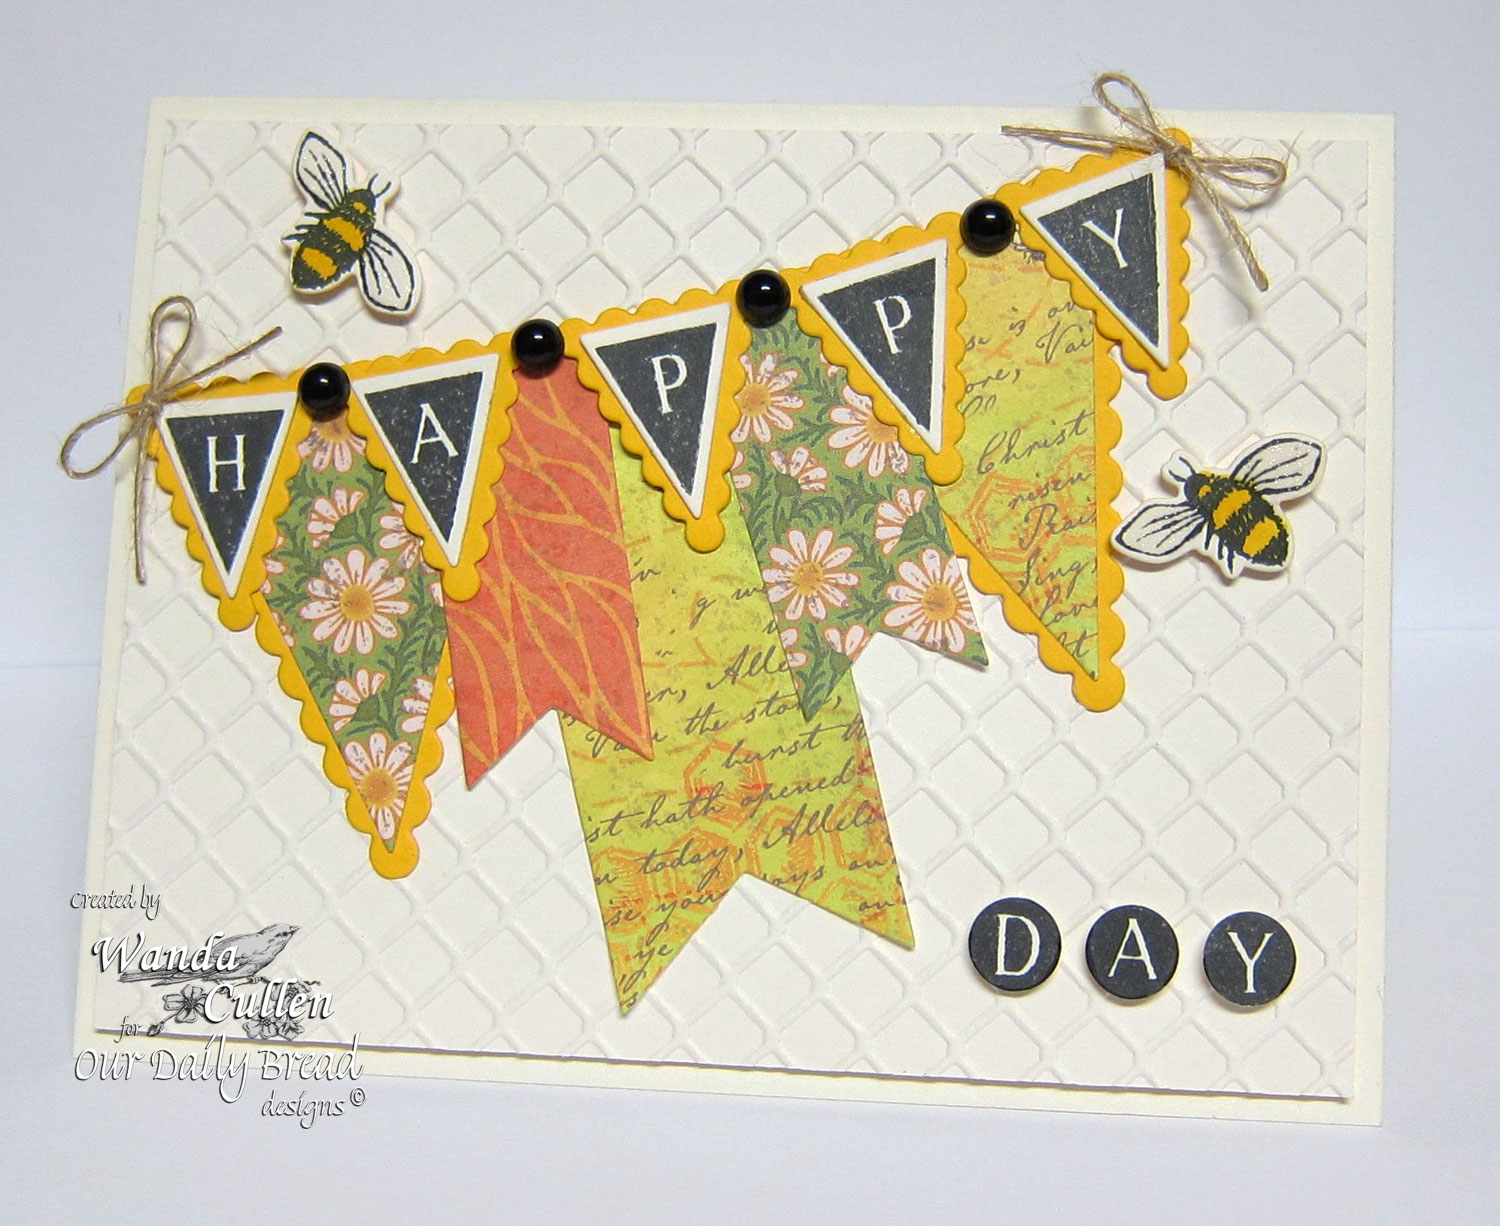 Stamps - Our Daily Bread Designs Pennant Alphabet Solid, Zinnia, ODBD Custom Pennants Die, ODBD Custom Zinnia and Leaves Die, Blooming Garden Paper Collection